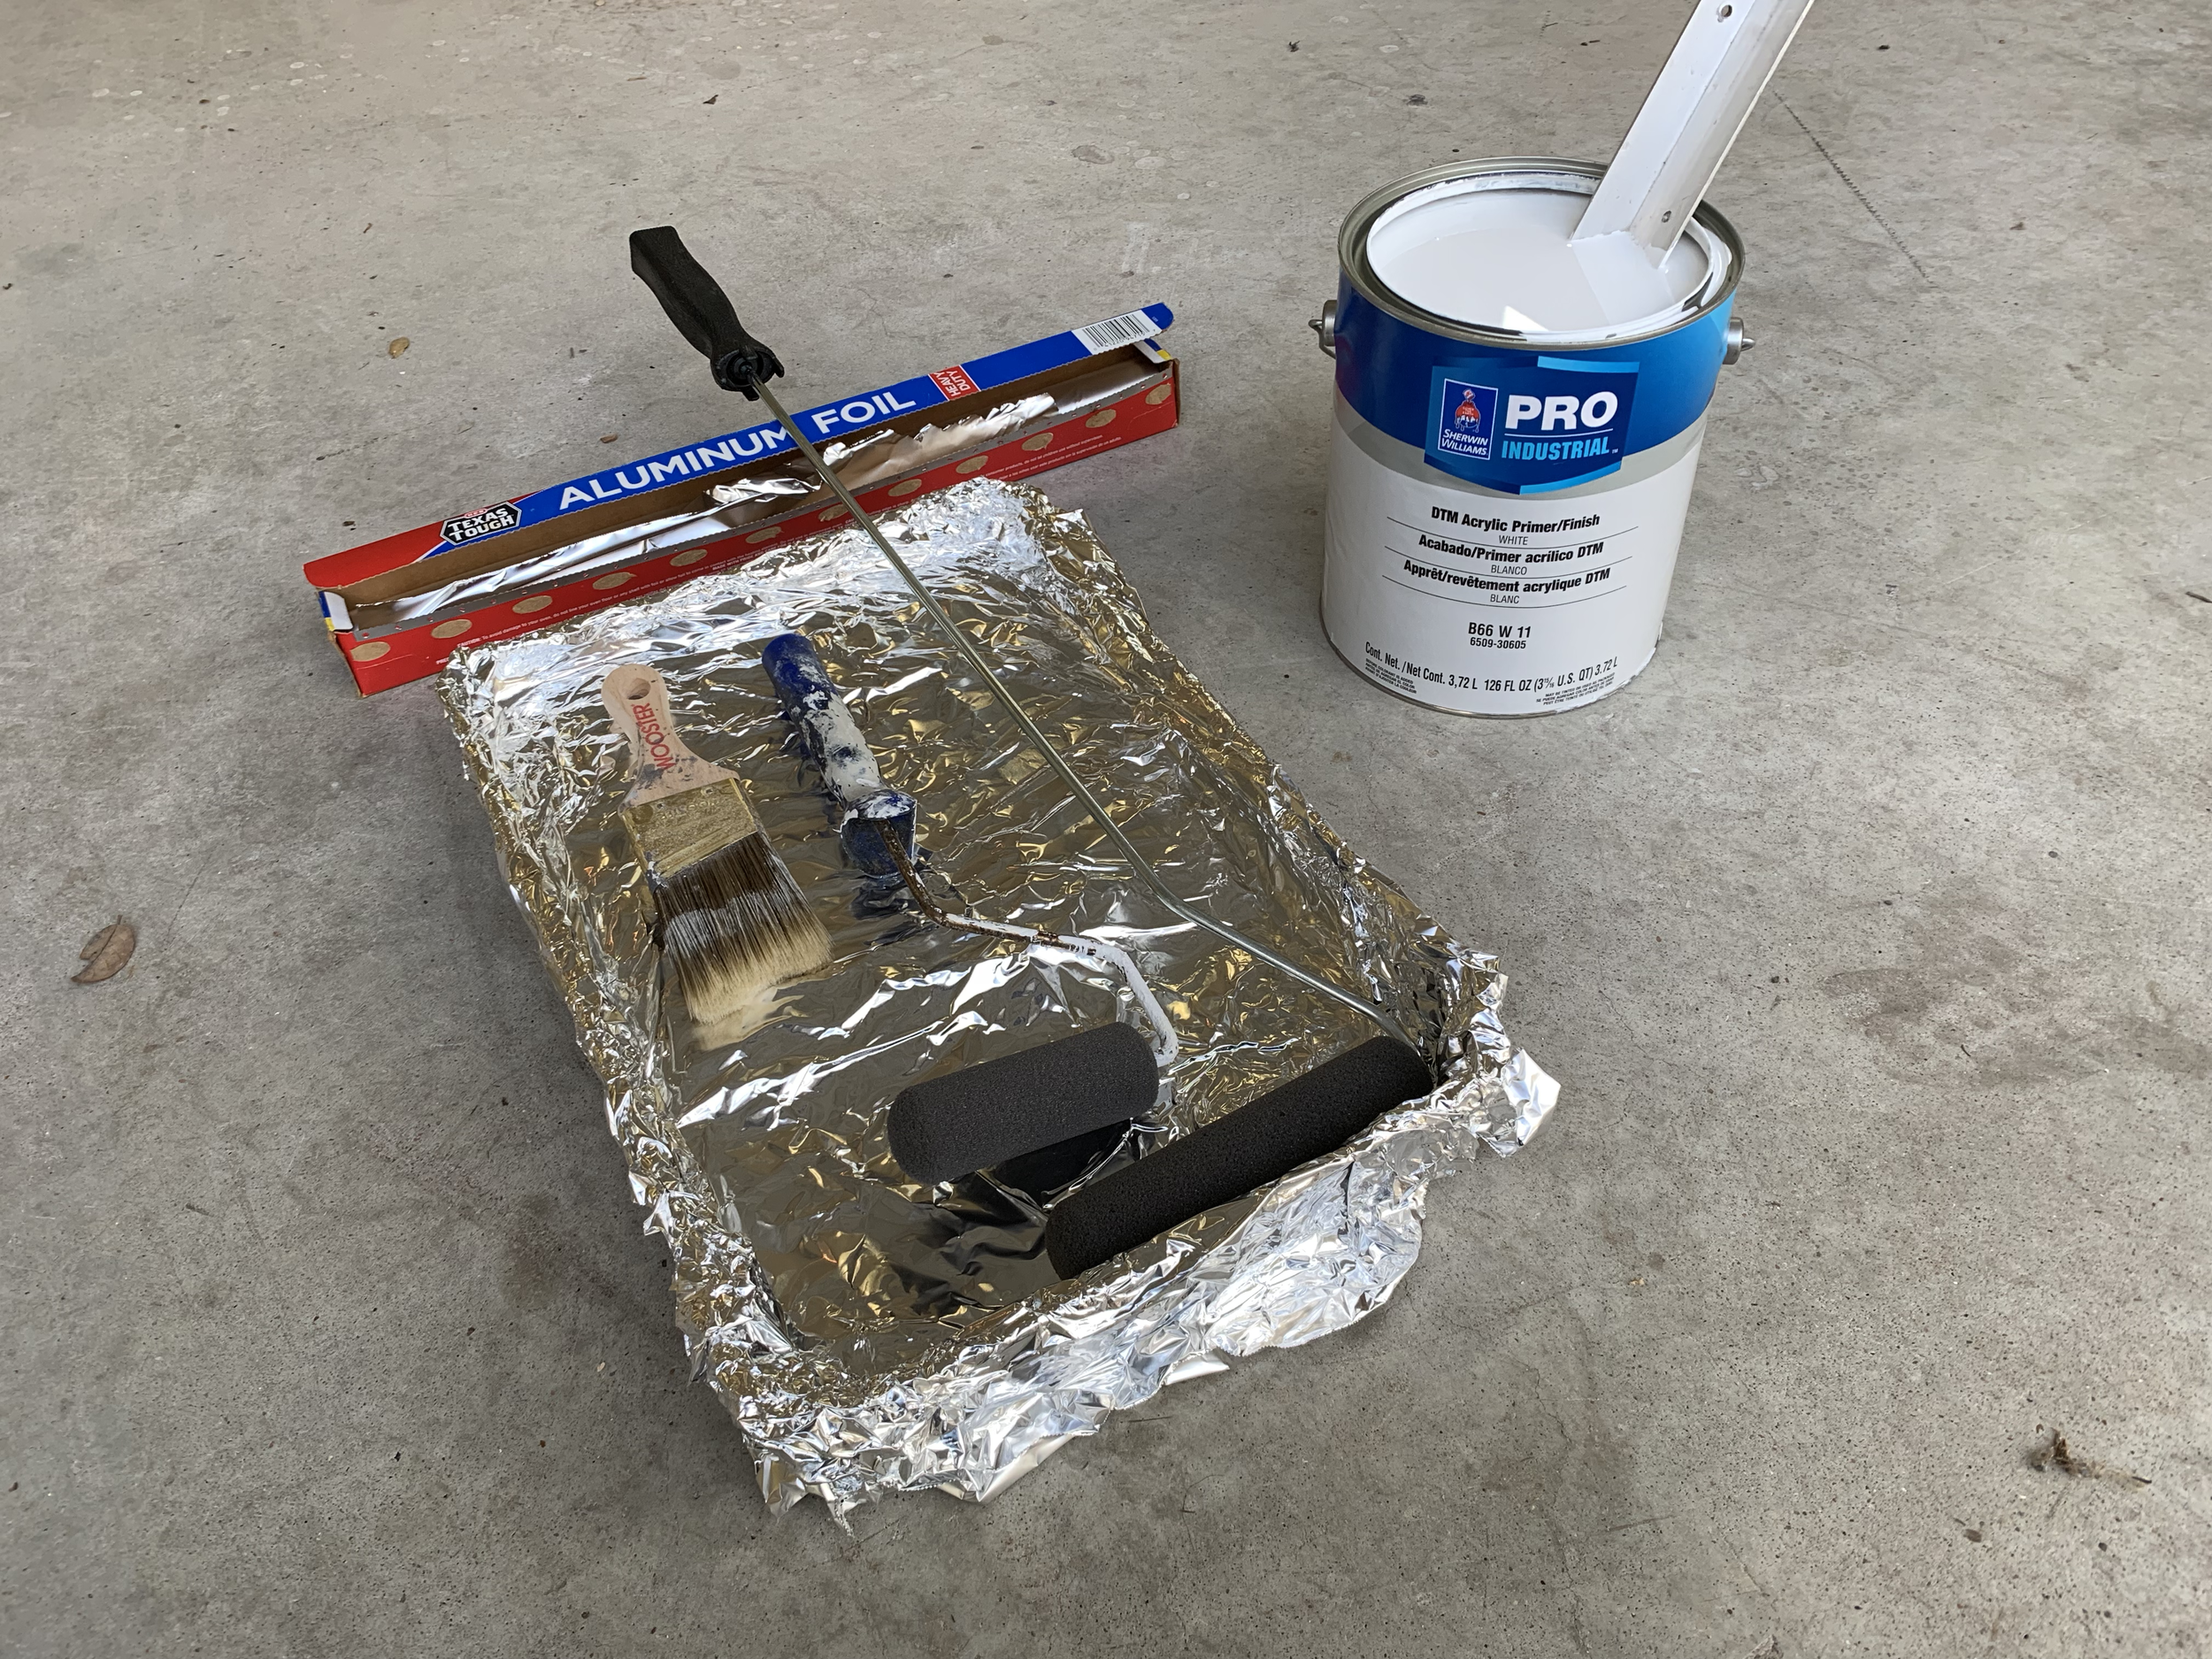 Primer supplies – Sherwin Williams DTM Acrylic Primer/Finish, foam rollers, oil paint brush, rolling tray with aluminum foil